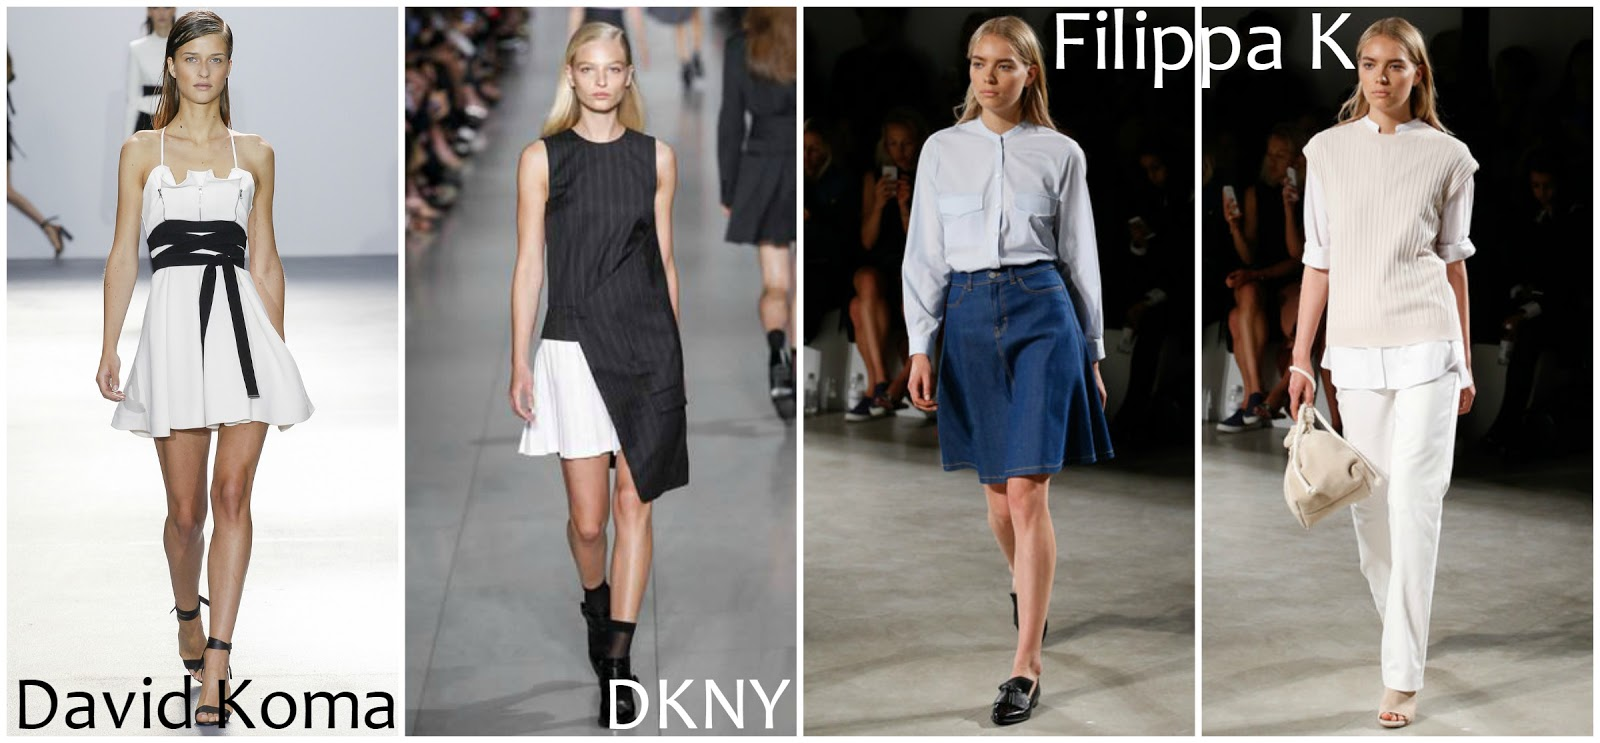 David Kome DKNY Filippa K runway fashion